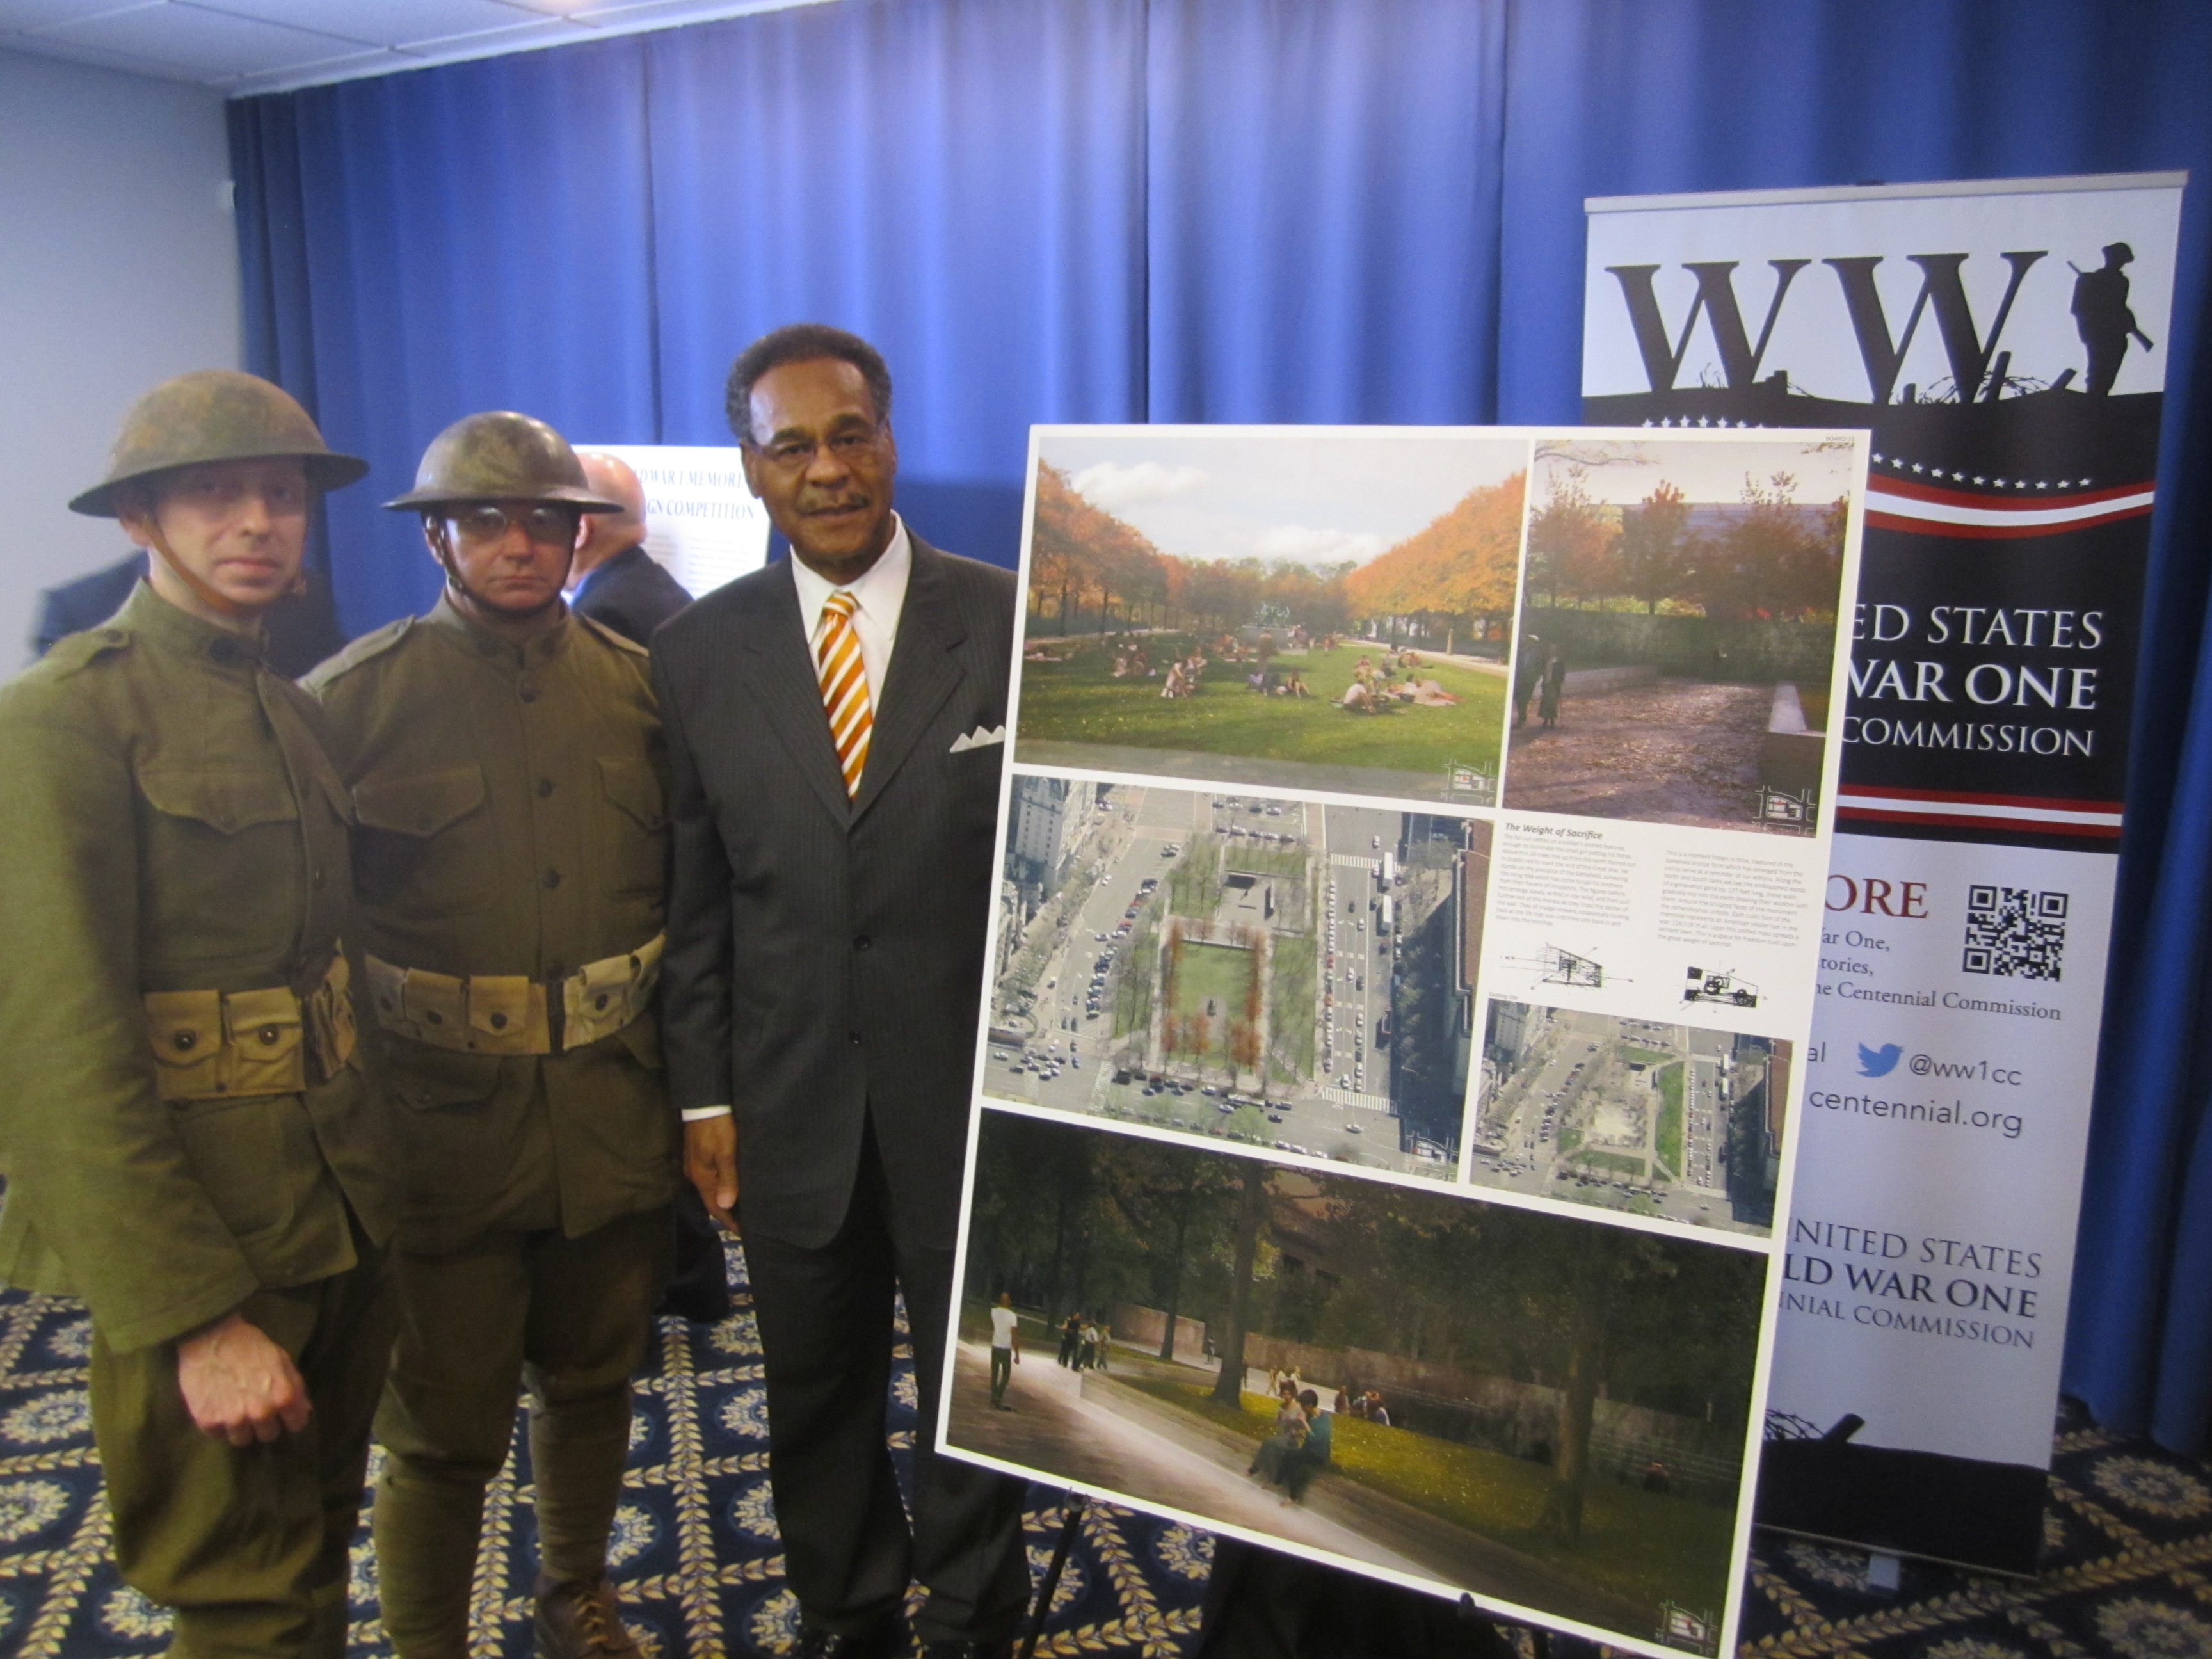 Congresman Cleaver joins World War I reenactors at the World War I Centennial Commission's announcement on Tuesday.